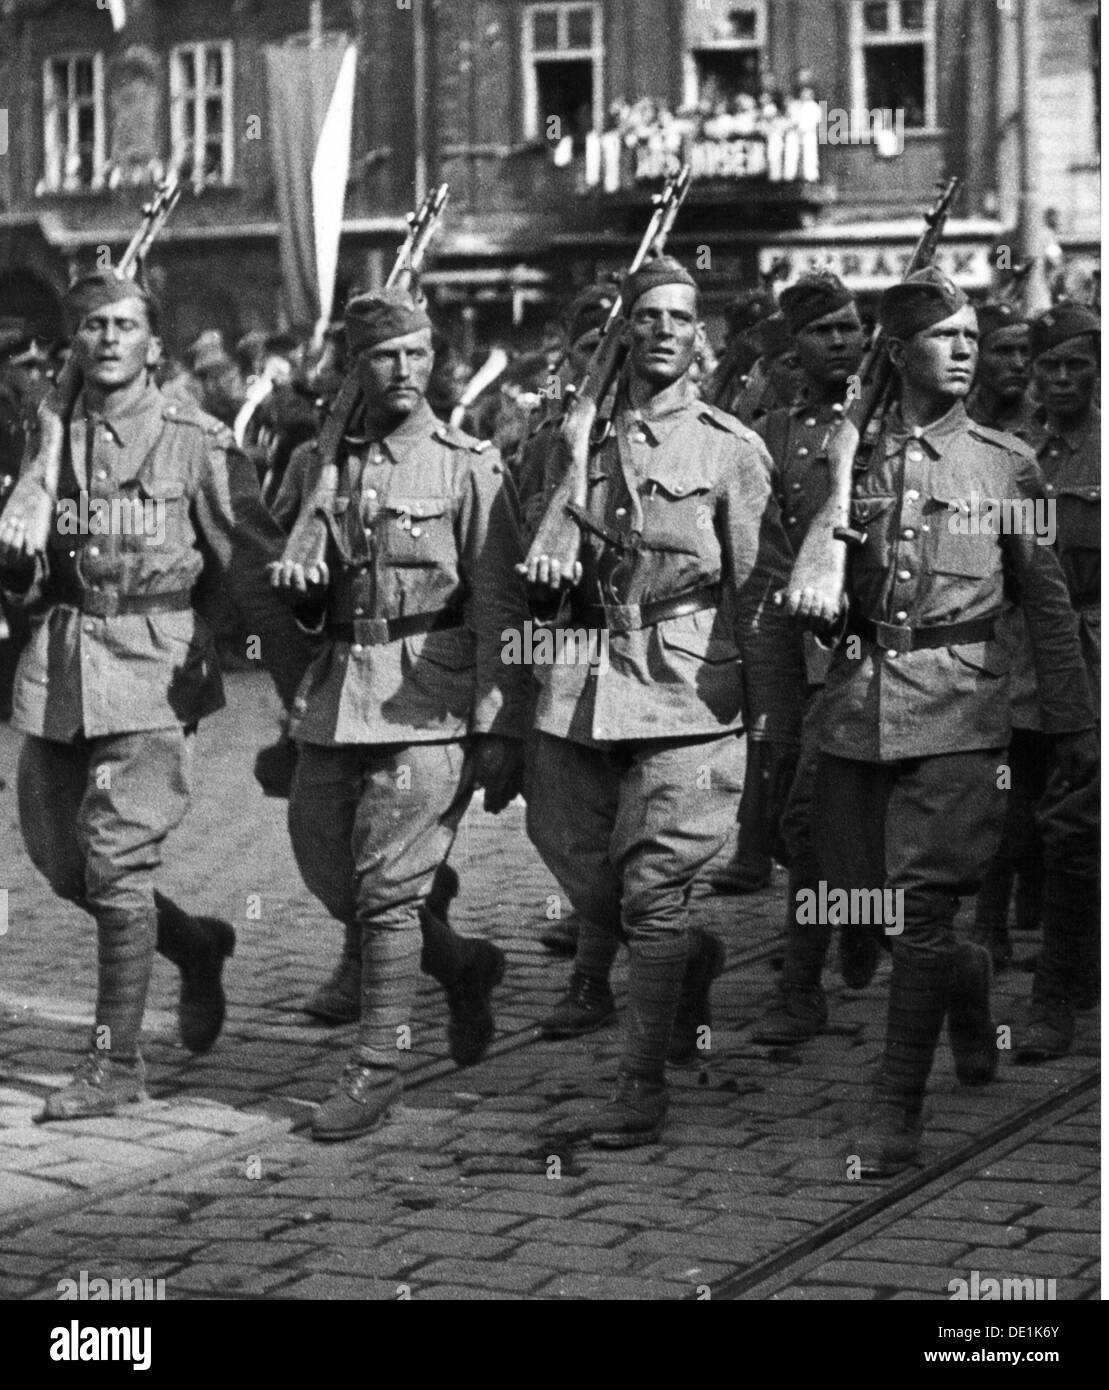 Second World War / WWII, Czechoslovakia, Prague Uprising, May 1945, victory parade, soldiers of the Czechoslovakian exile army, 17.5.1945, 20th century, 1940s, 40s, Czechia, Czech Republic, resistance, Red Army, military, soldiers, soldier, full length, march, marching, uniform, uniforms, weapon, weapons, arms, rifle, gun, rifles, guns, gaiter, puttee, gaiters, puttees, military parade, street, streets, victory, victories, liberation, liberations, liberator, liberators, military review, world war, world wars, uprising, rising, uprisings, Prague, Praha, historic, Additional-Rights-Clearences-NA - Stock Image